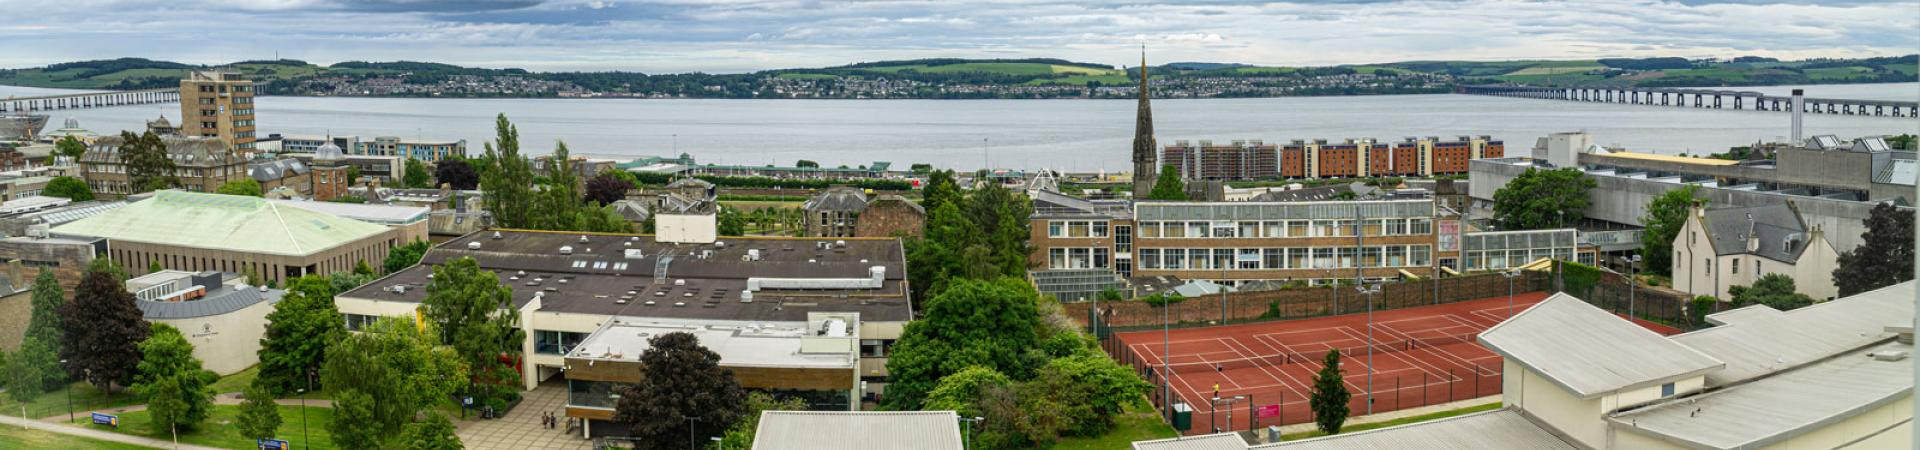 A view over part of Dundee from our student accommodation.